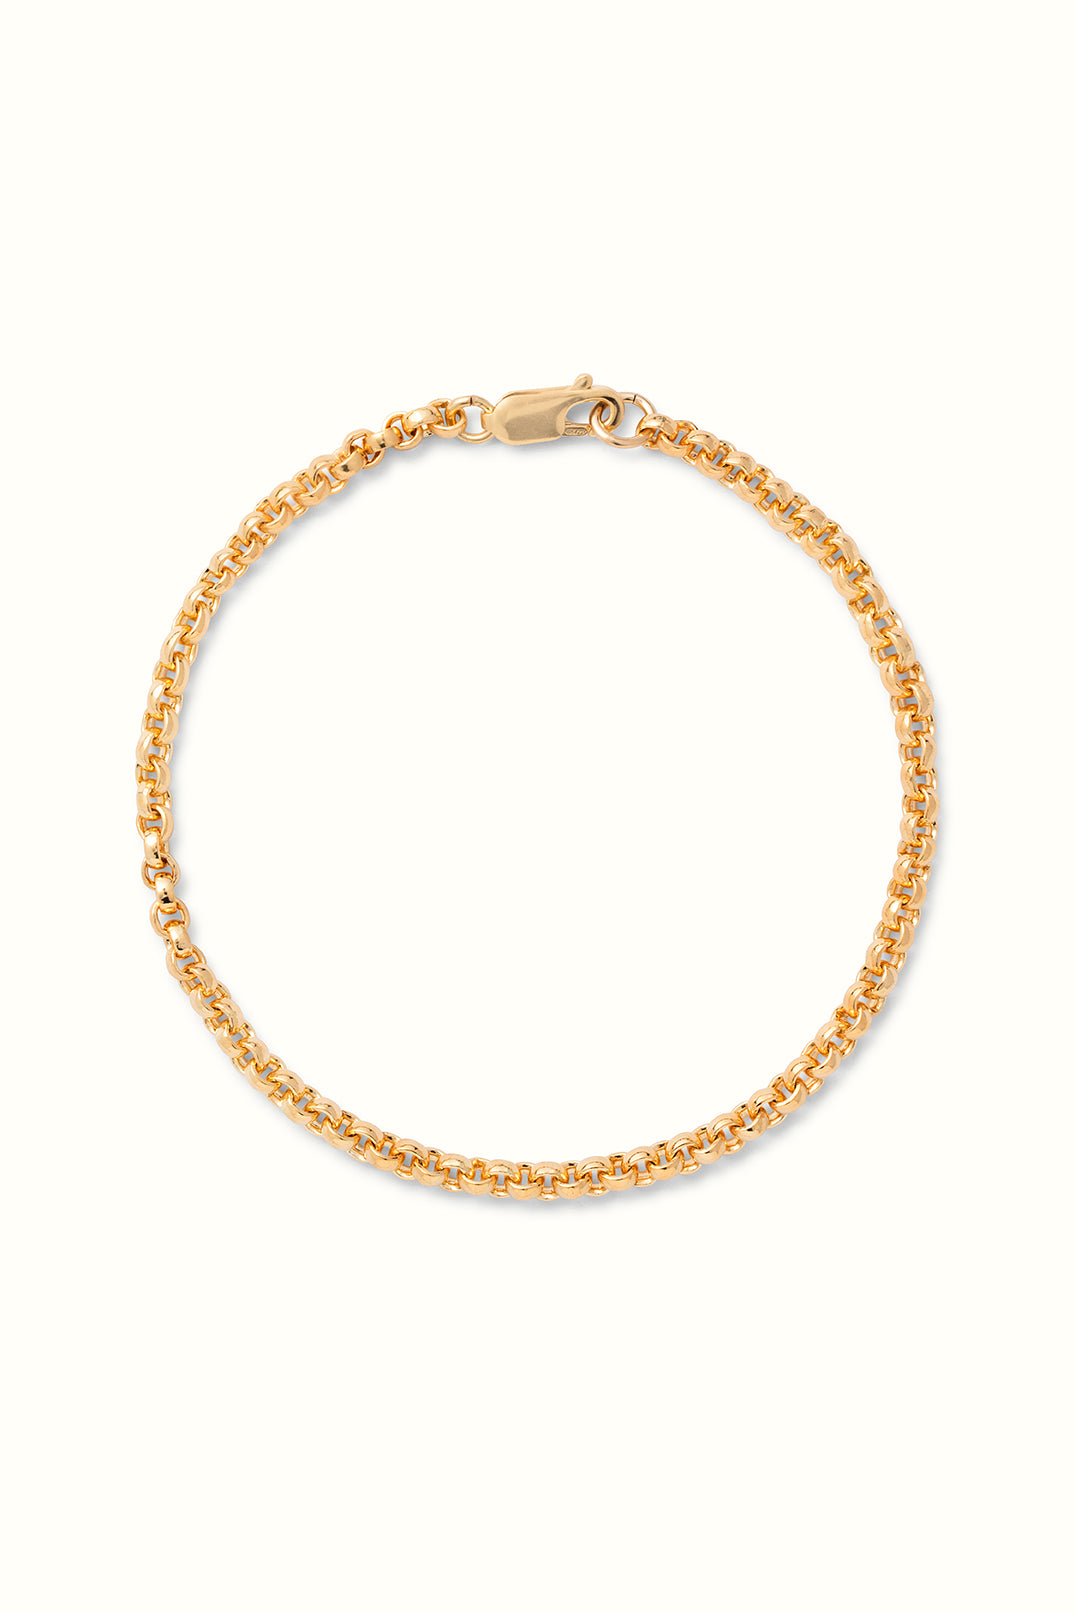 a product close up of a gold filled rolo chain bracelet on a white surface